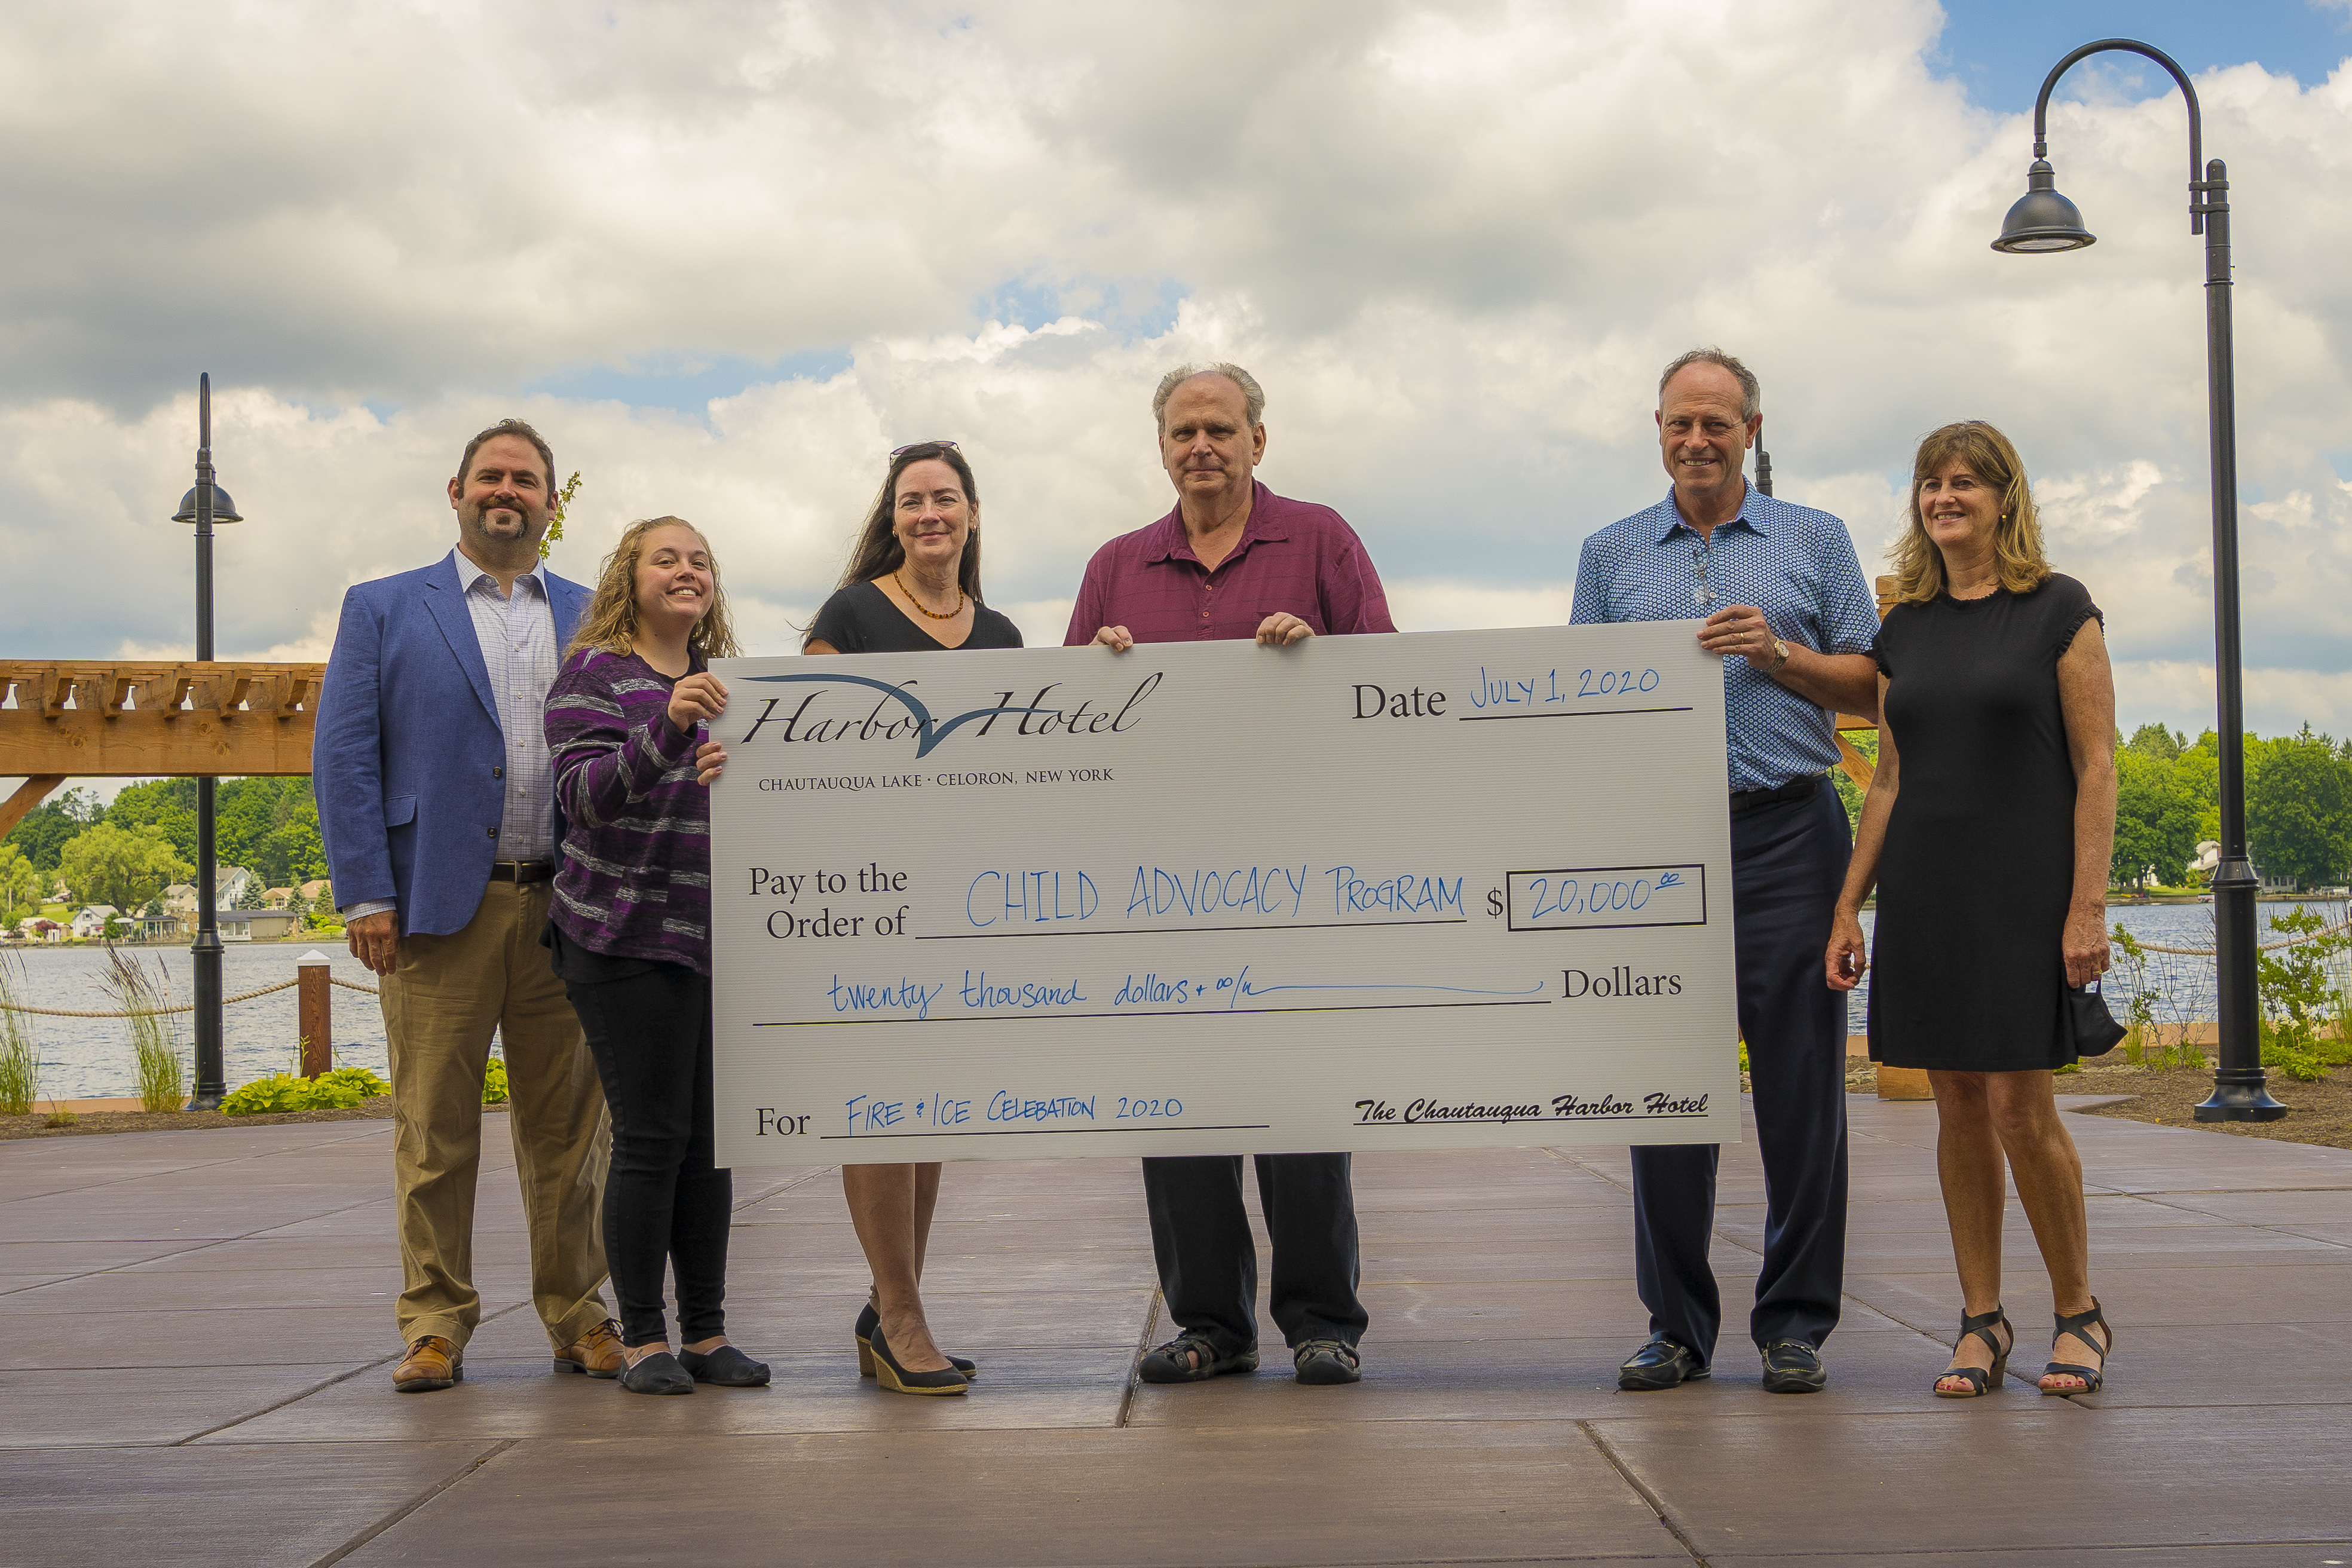 David Hart, President and CEO of Hart Hotels, presents check to Child Advocacy Program.